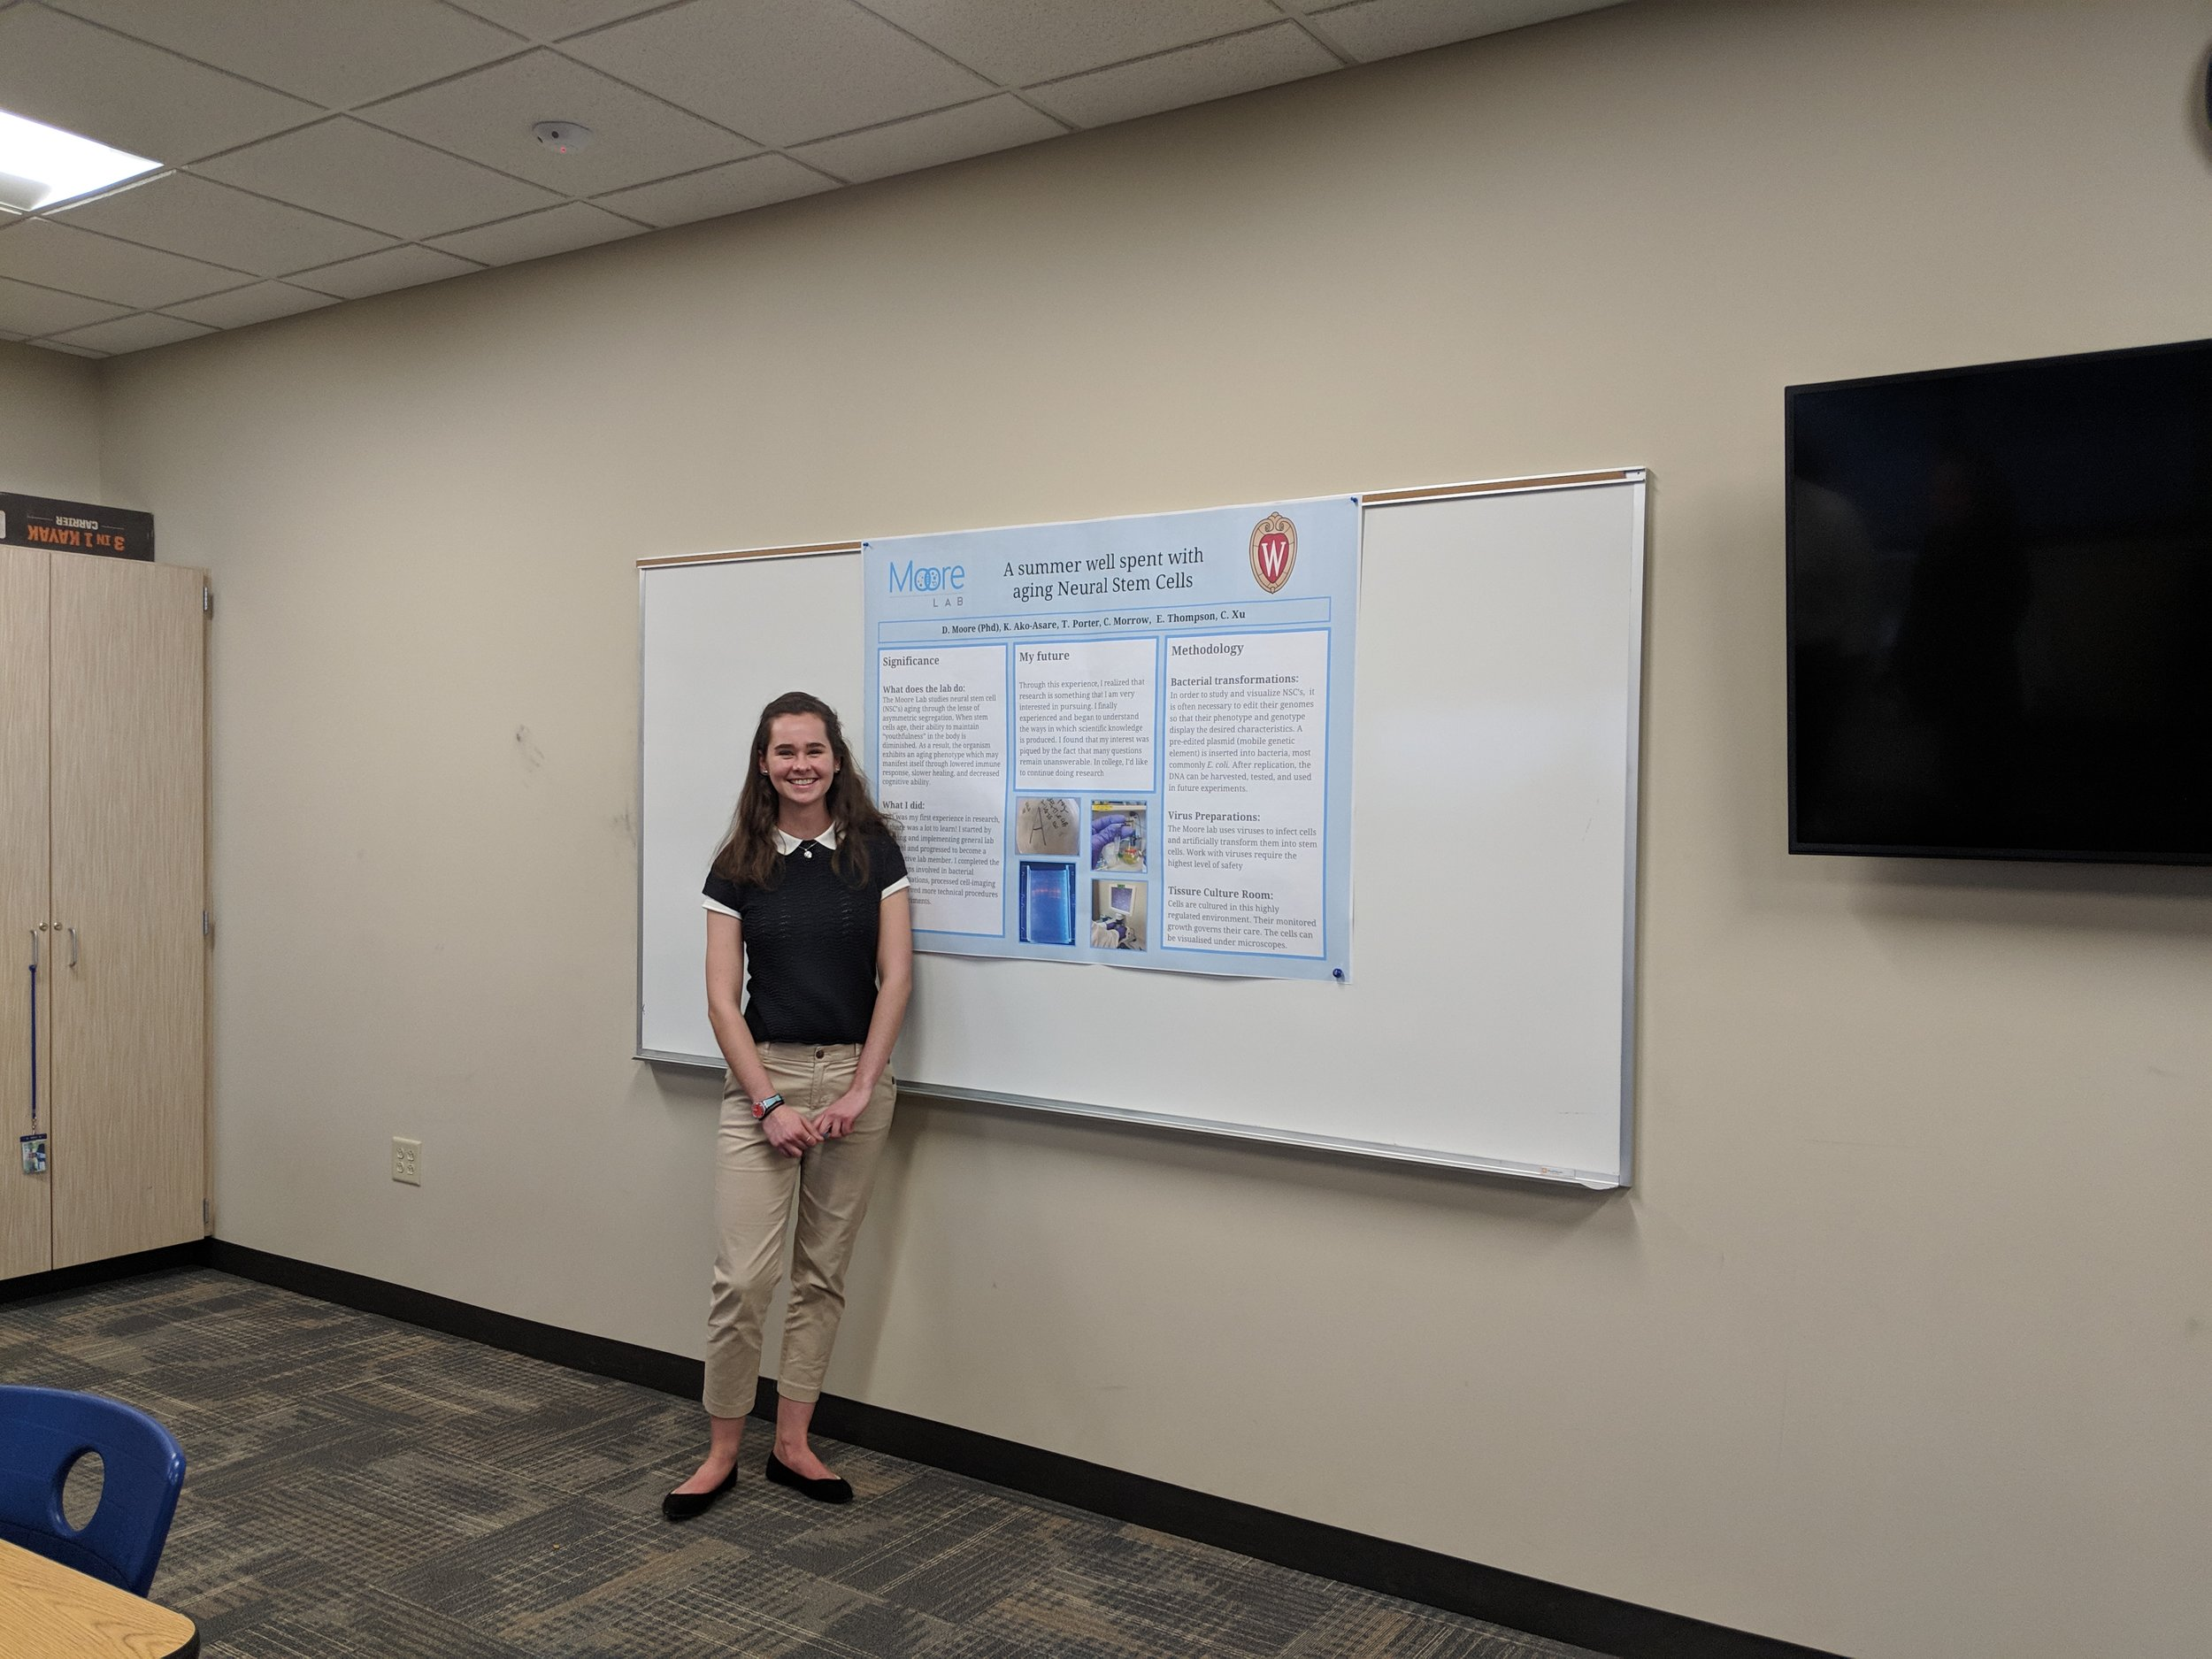 Our high school senior, Victoria, presents her summer research experience.